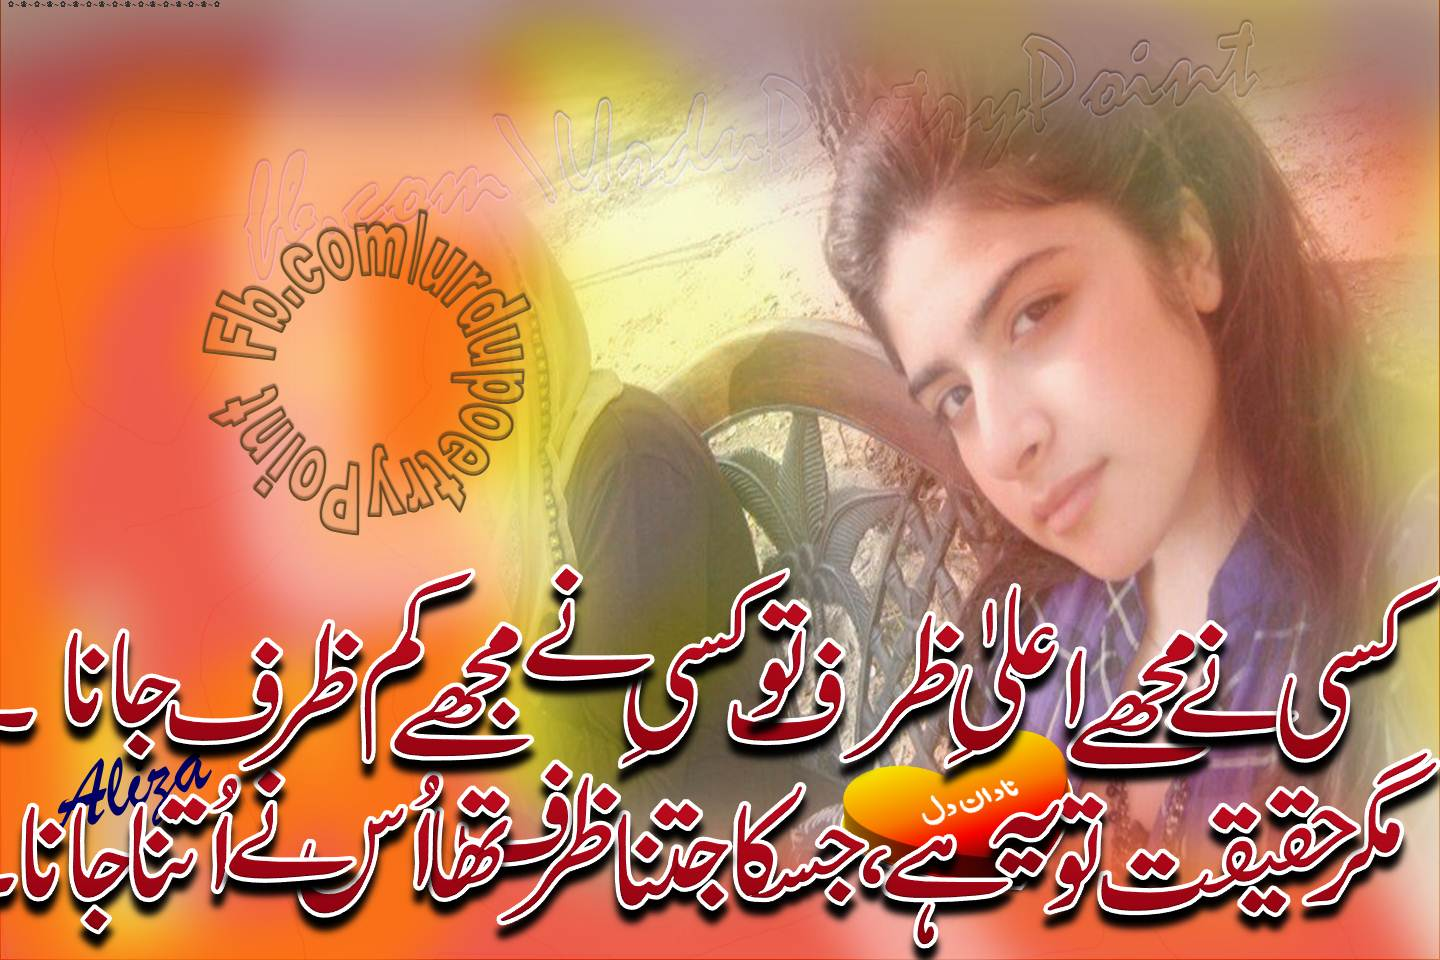 Displaying 18> Images For - Urdu Sad Poetry About Friends...